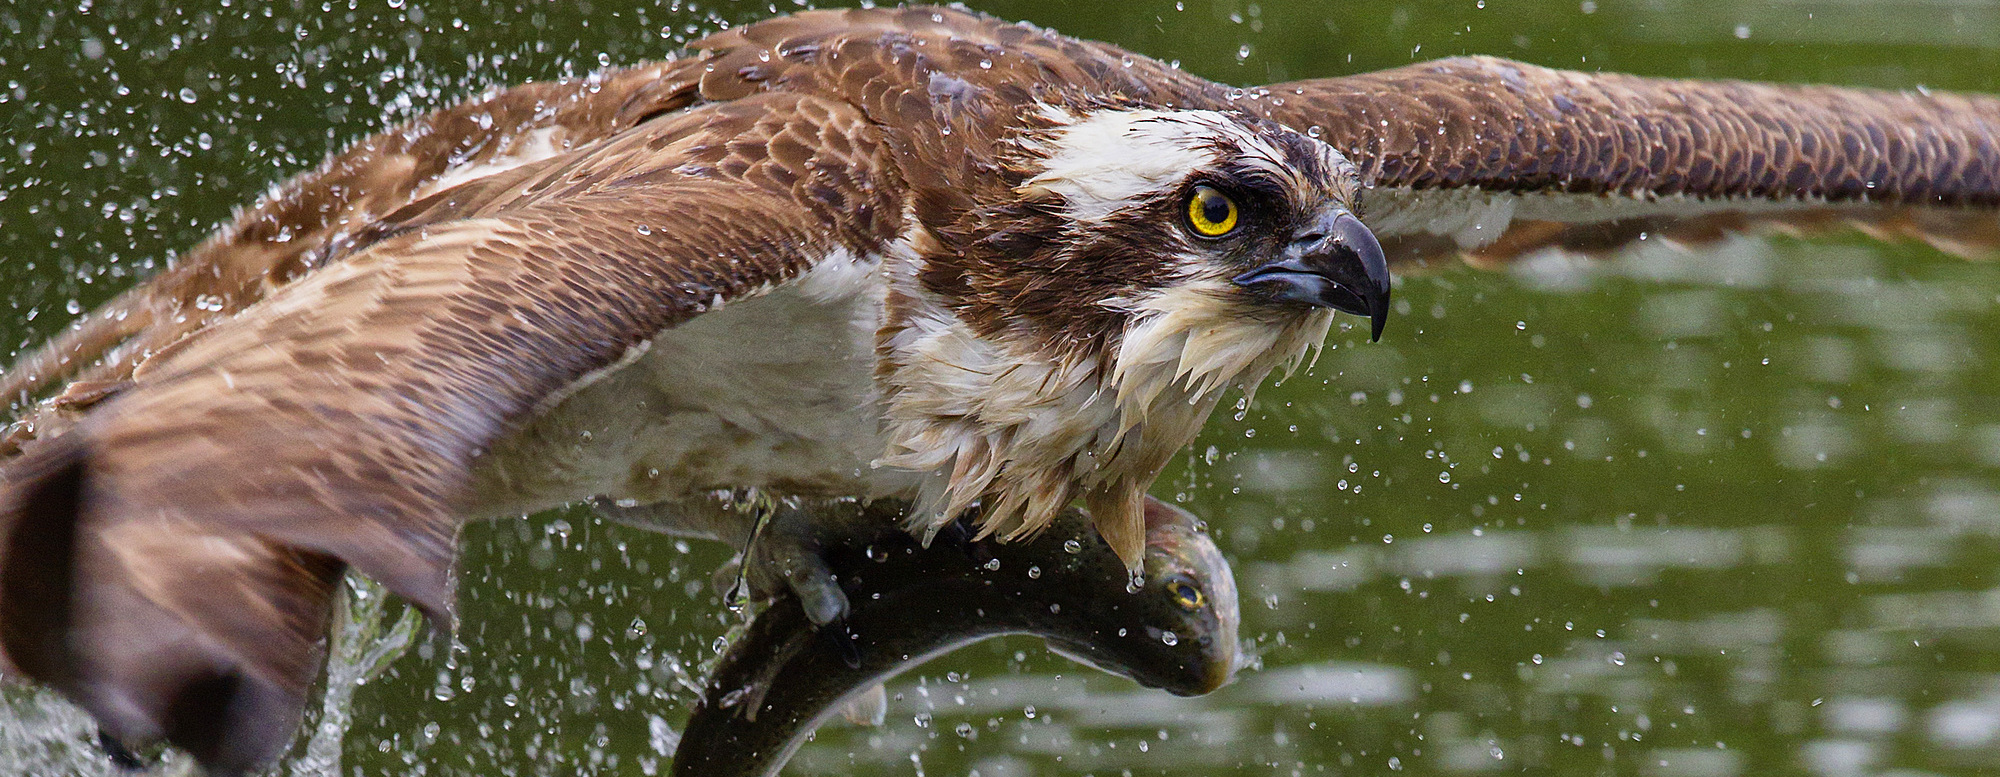 1219-147 ( Garry Ridsdale ) - Osprey (Pandion haliaetus) flying low above the water with a freshly caught fish in its grasp, Pirkanmaa, Finland, Scandinavia, Europe